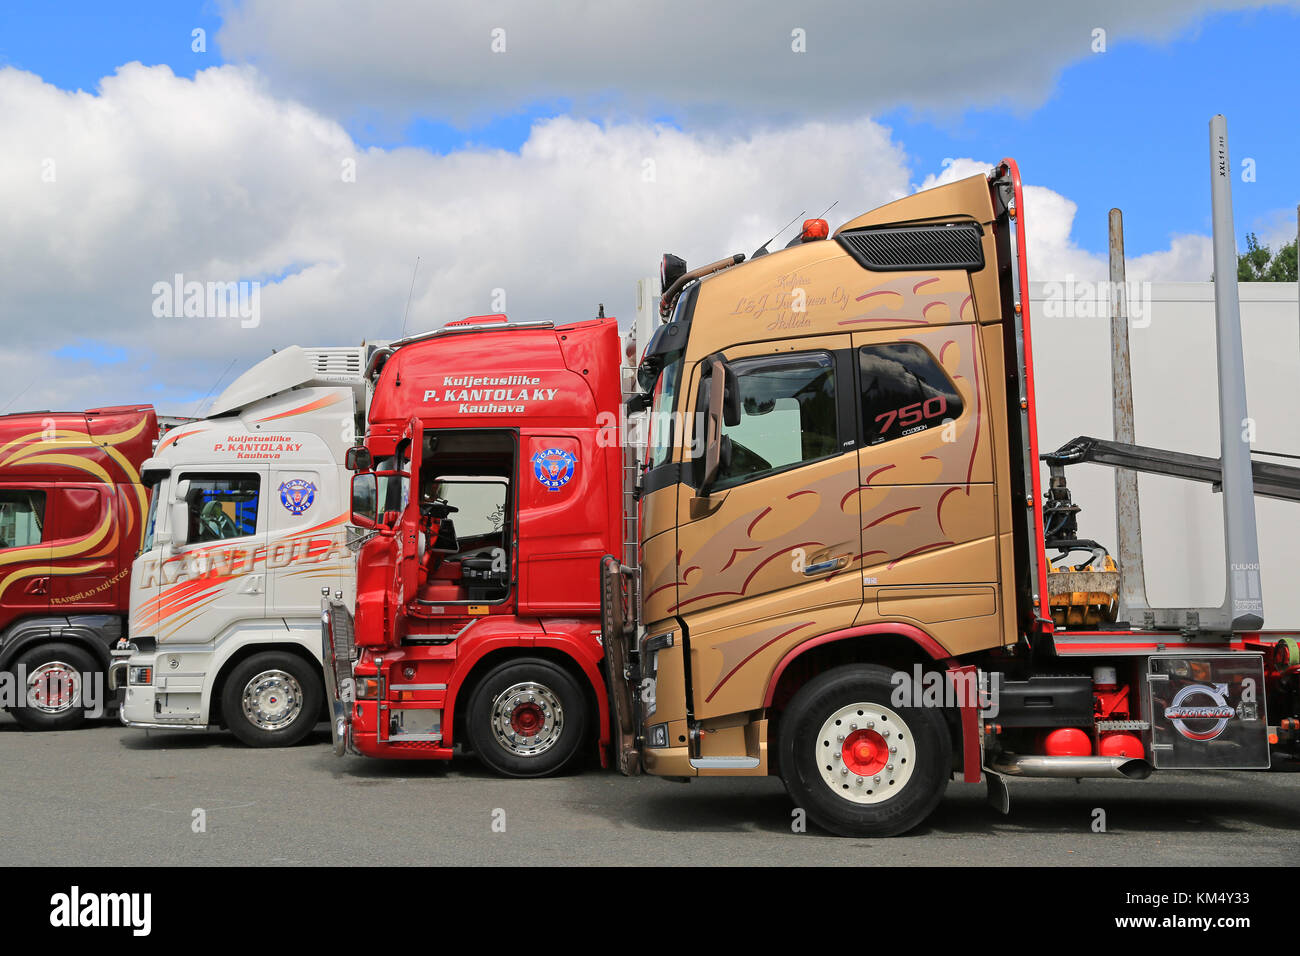 HAMEENLINNA, FINLAND - JULY 11, 2015: Lineup of colorful Volvo and Scania Trucks at Tawastia Truck Weekend 2015. Stock Photo